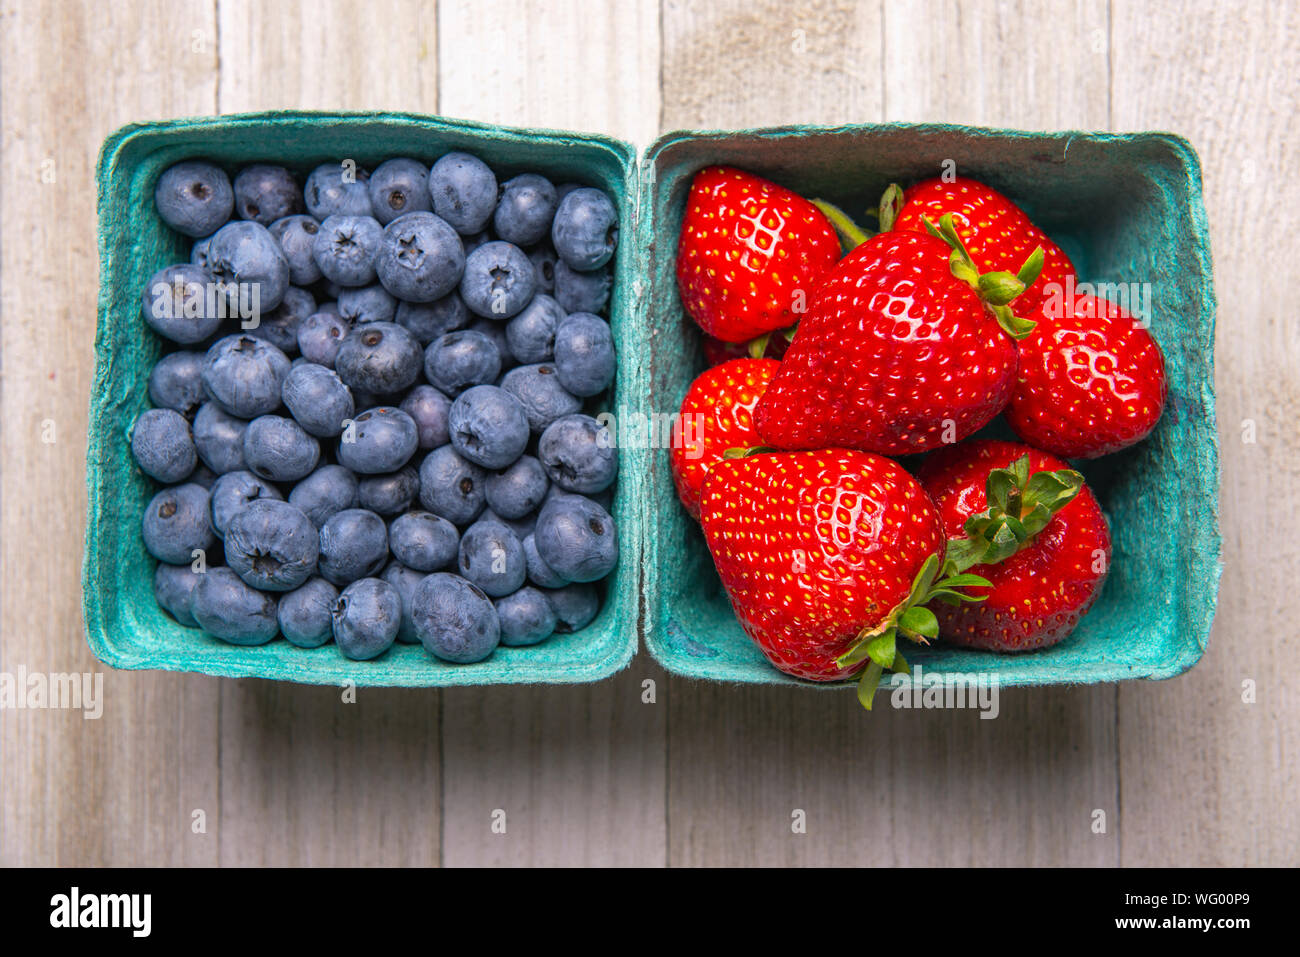 Containers of fresh ripe blueberries and strawberries from the farmers market Stock Photo